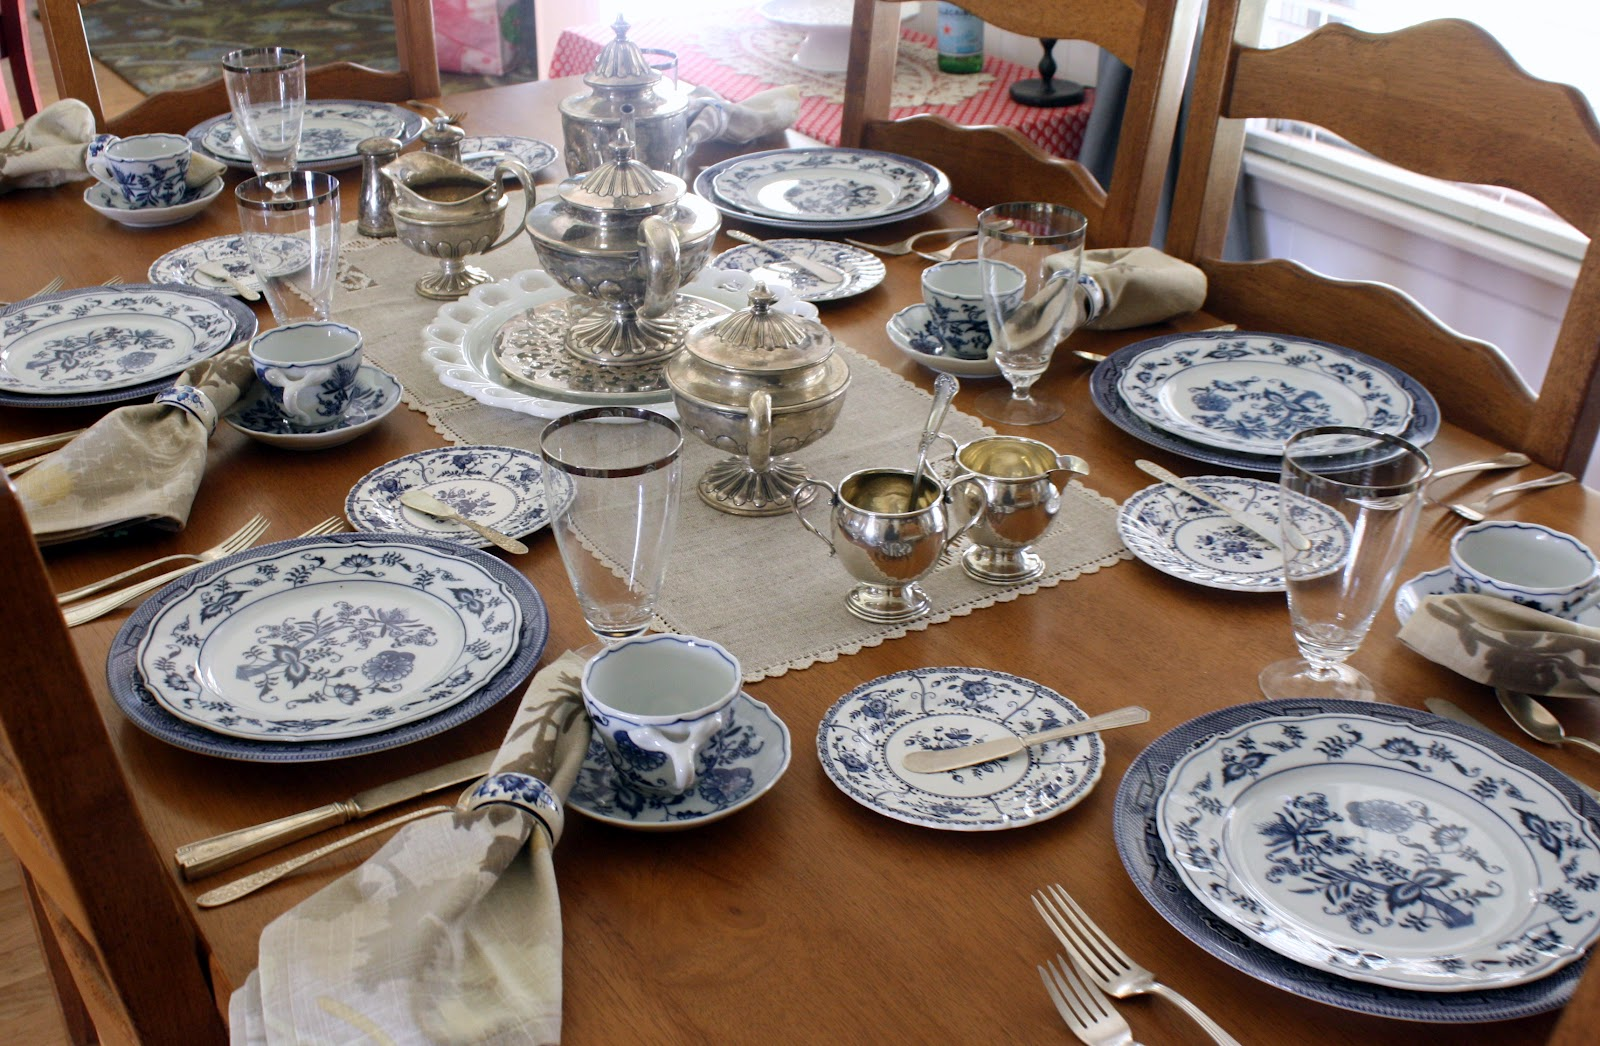 I used my momu0027s wedding crystal my grandmotheru0027s silverware Blue Willow plates and Blue Danube luncheon plates Indies Blue bread plates my grandmotheru0027s ... & Life with the Mozas: Jane Becker Wallace--my memories in a tea set